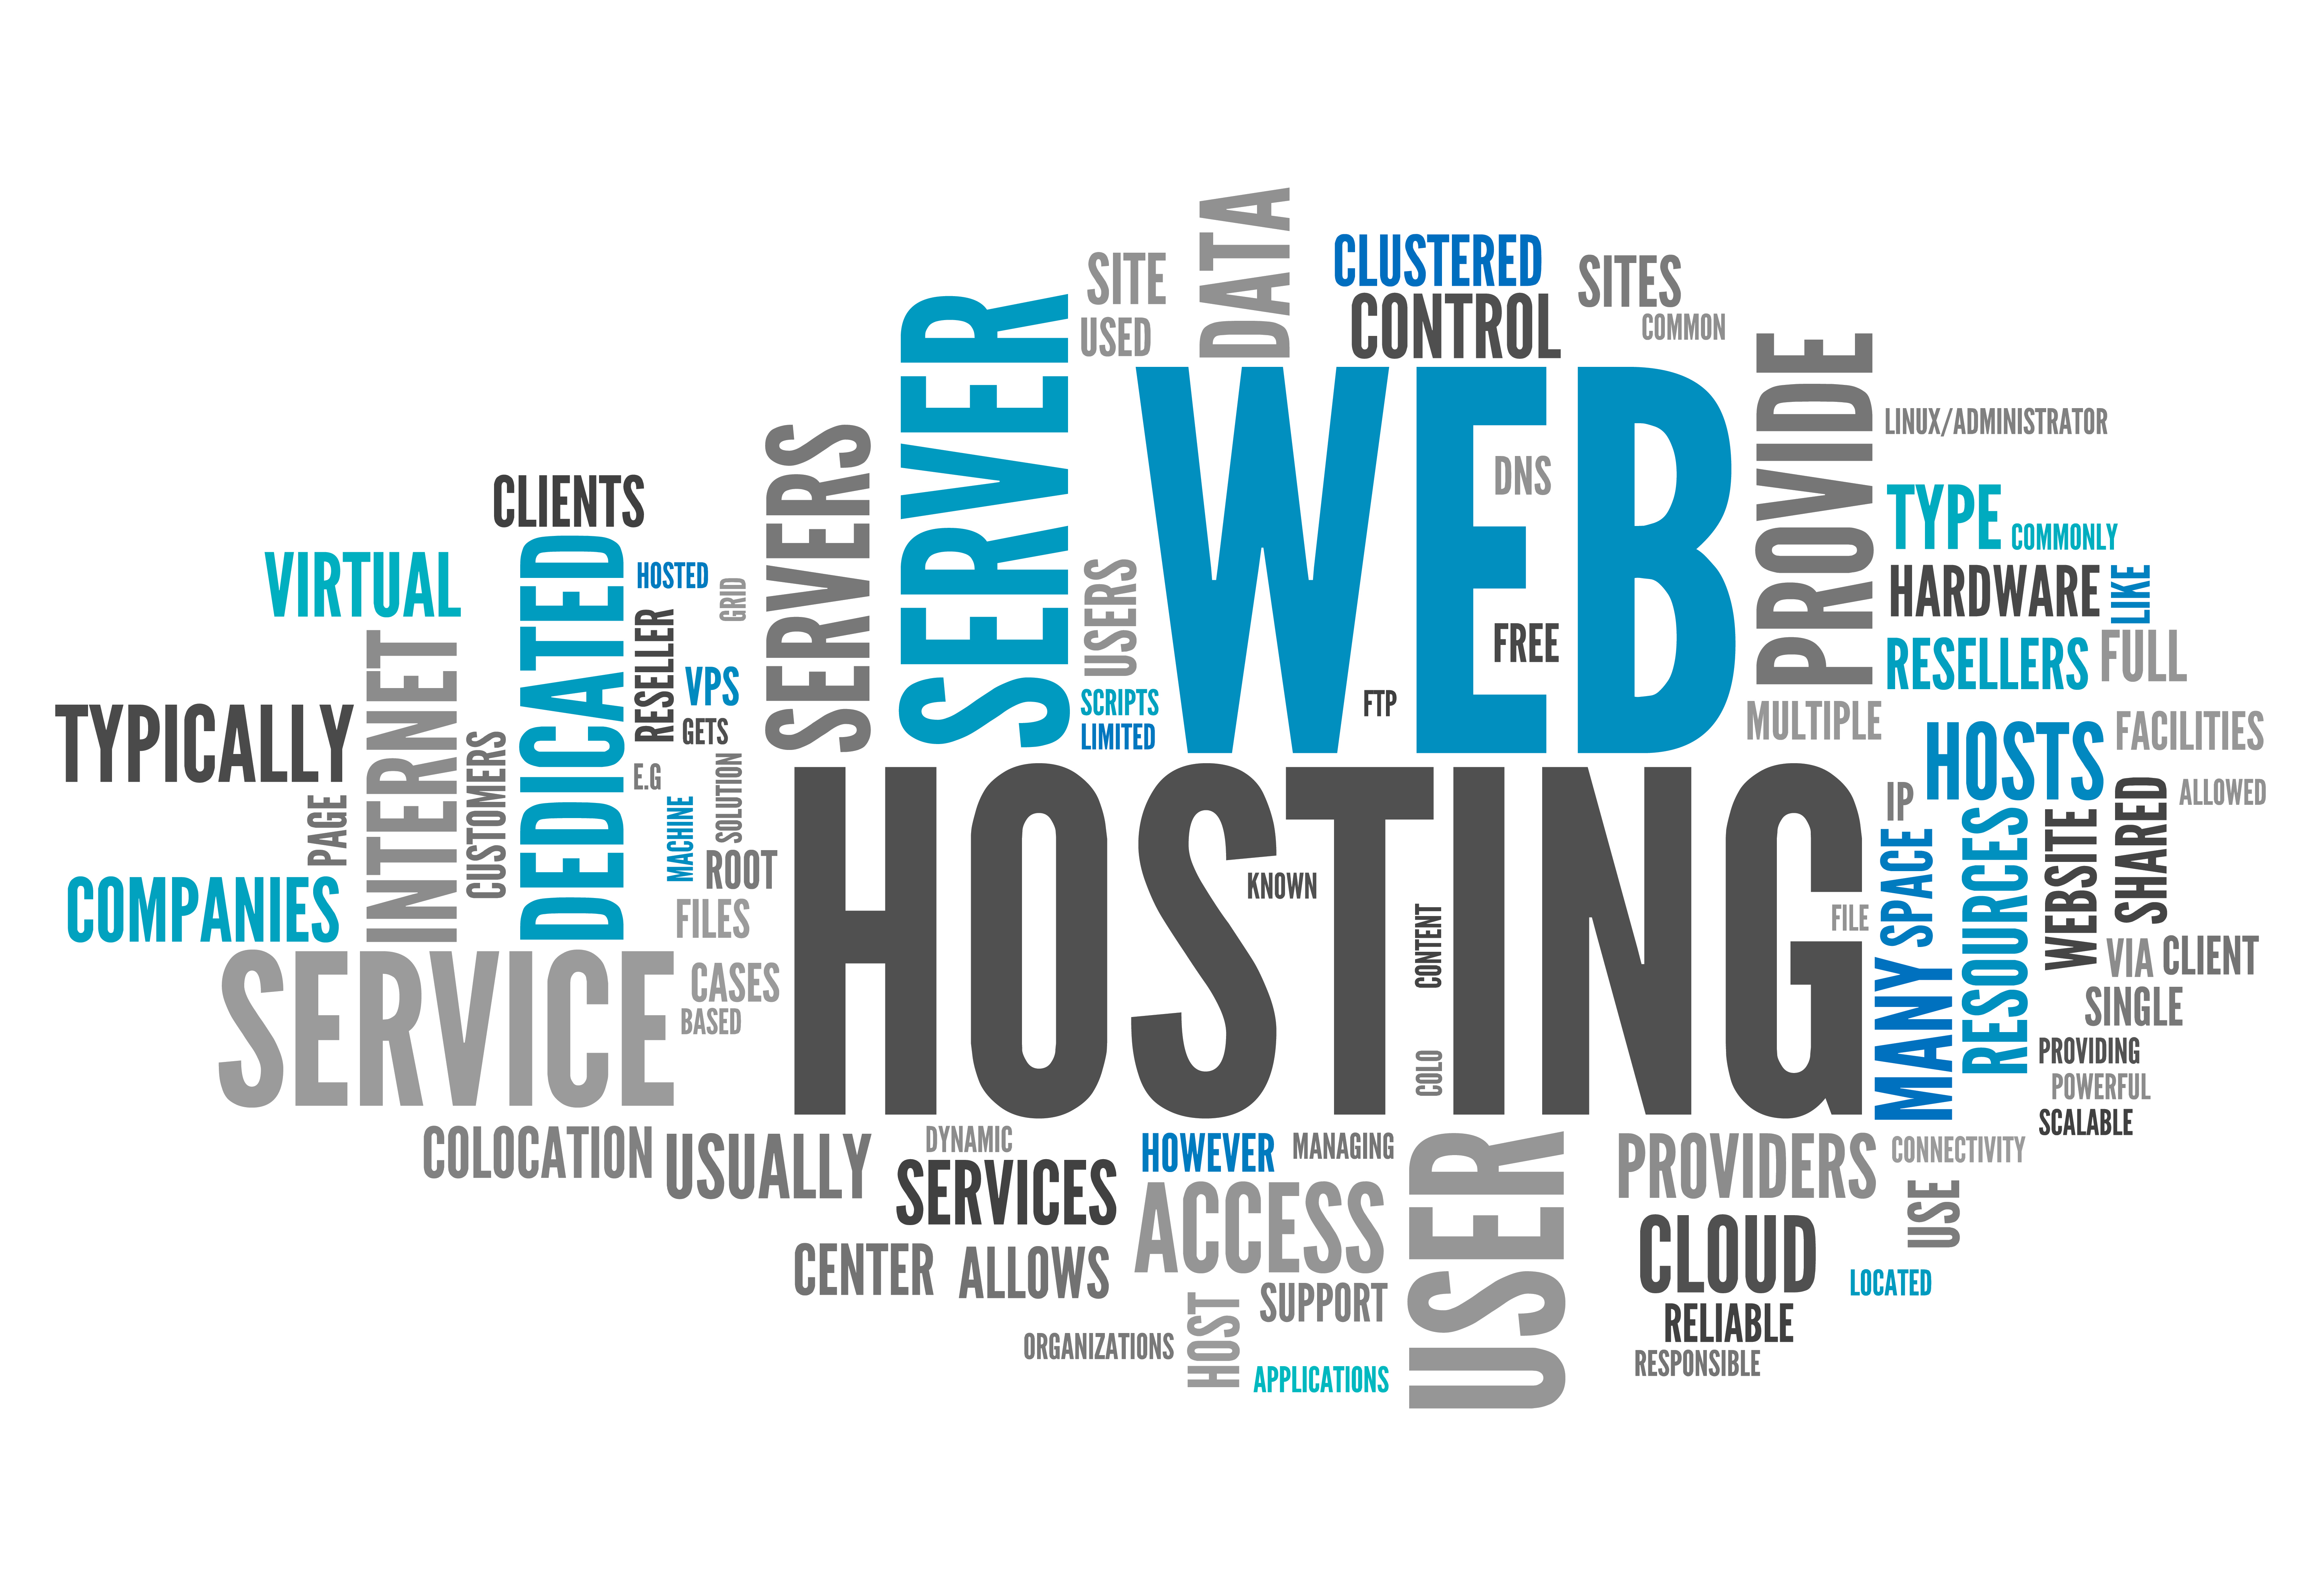 Get Unlimited SSD Web Hosting - 3 YEARS